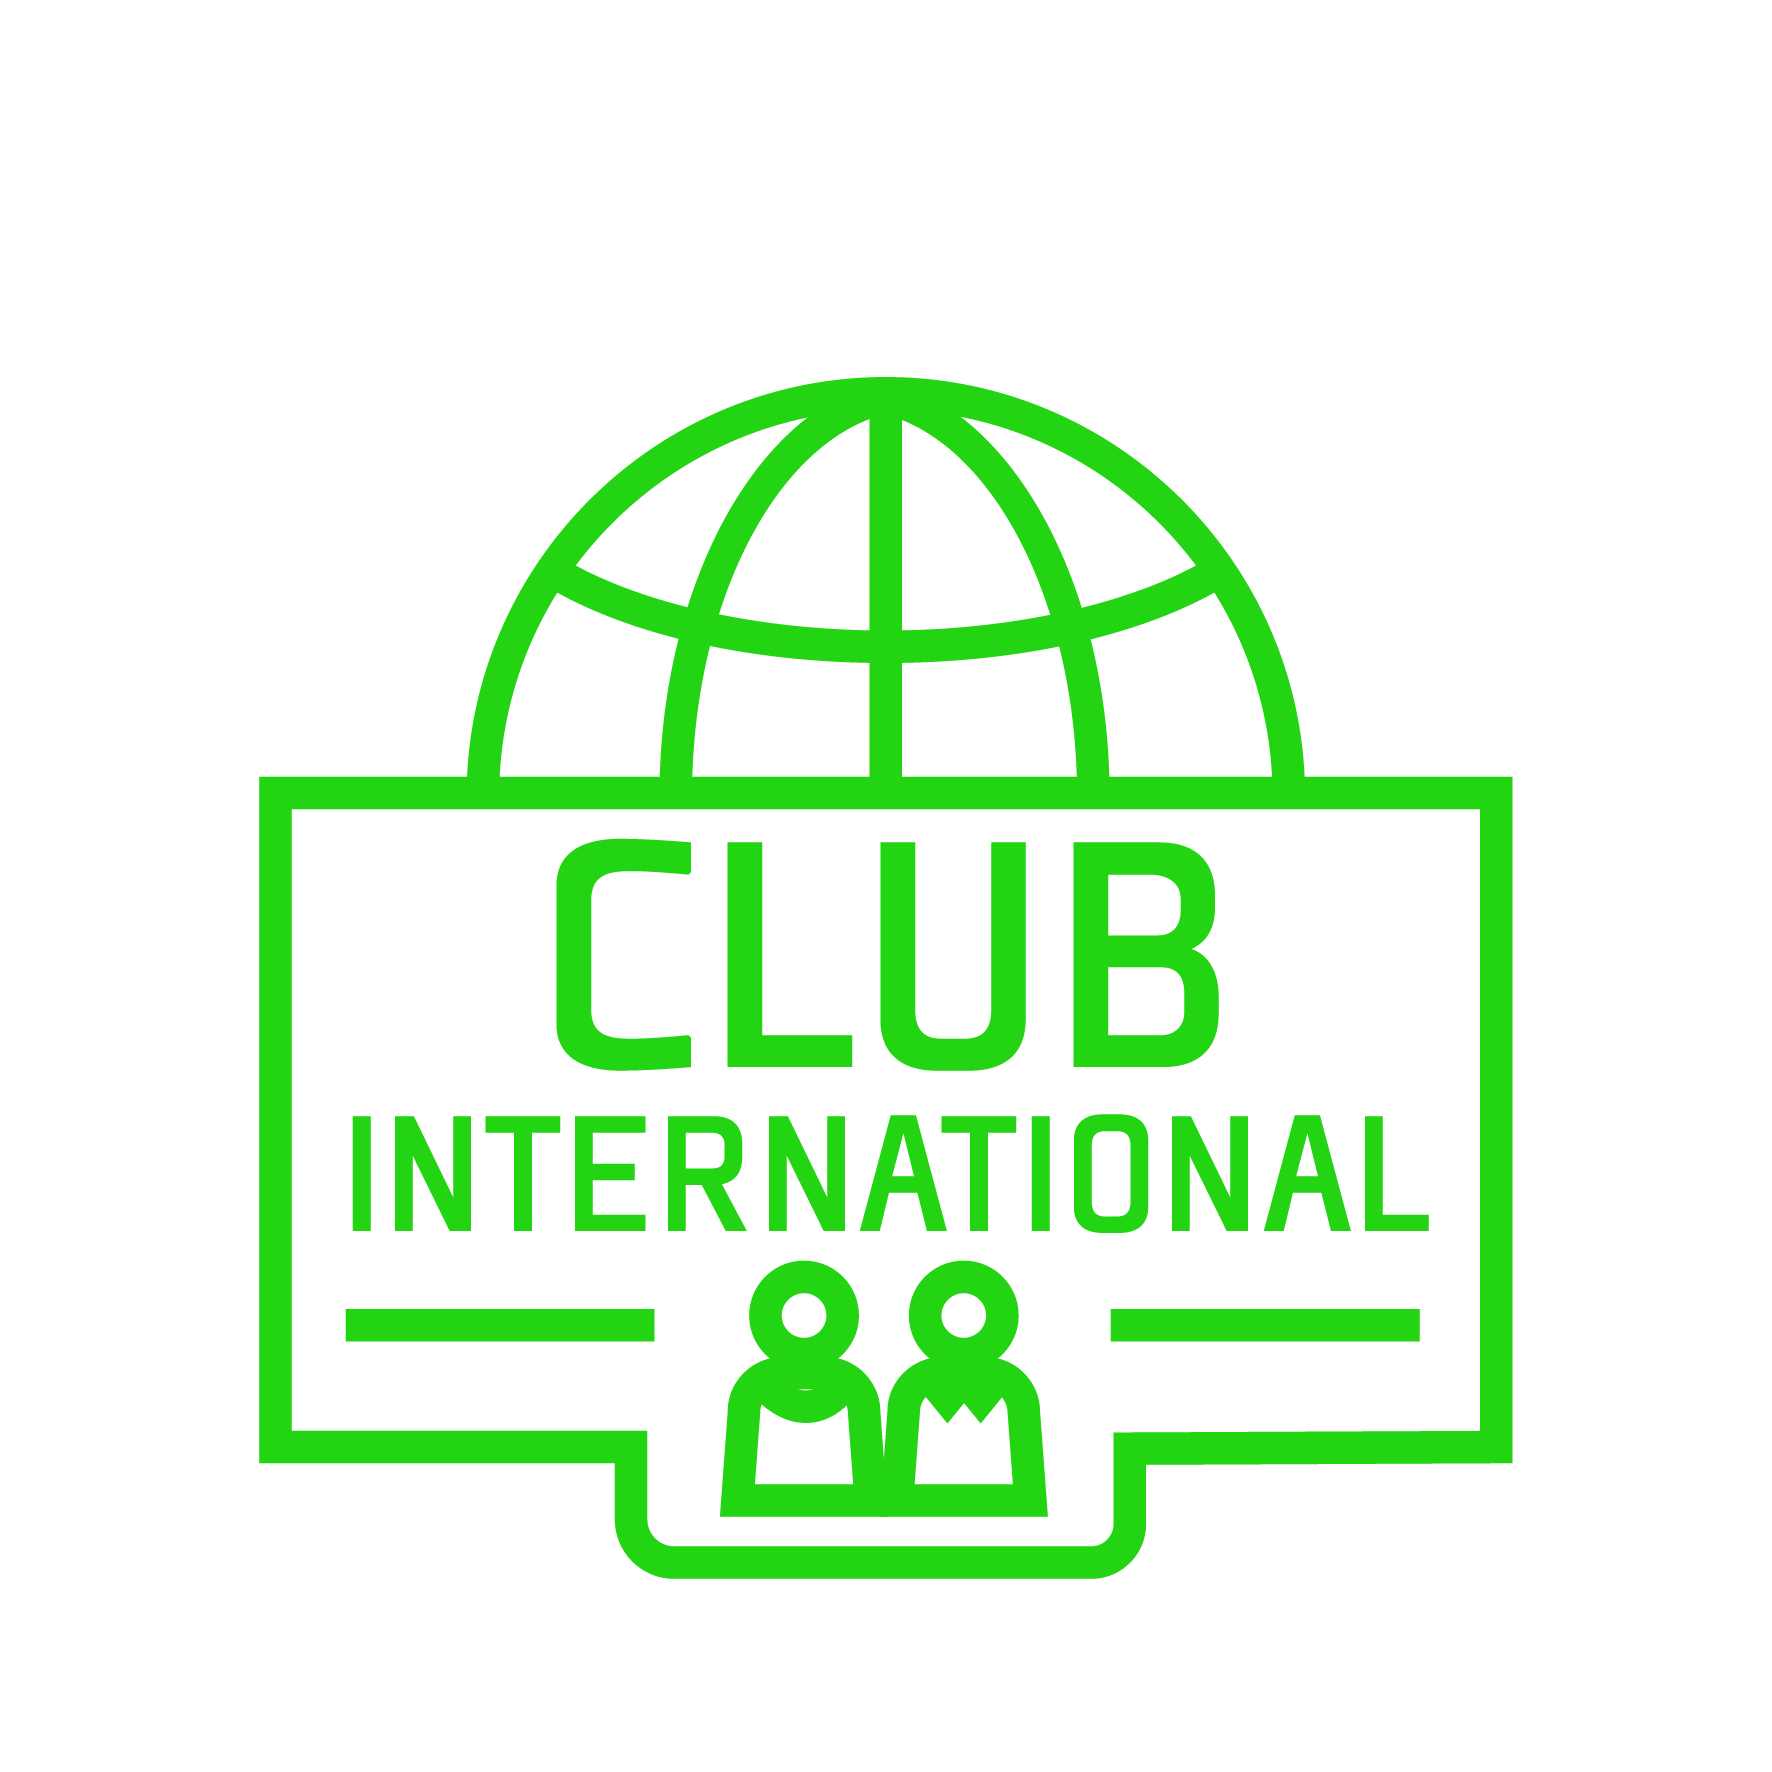 International Club SPACE 2019